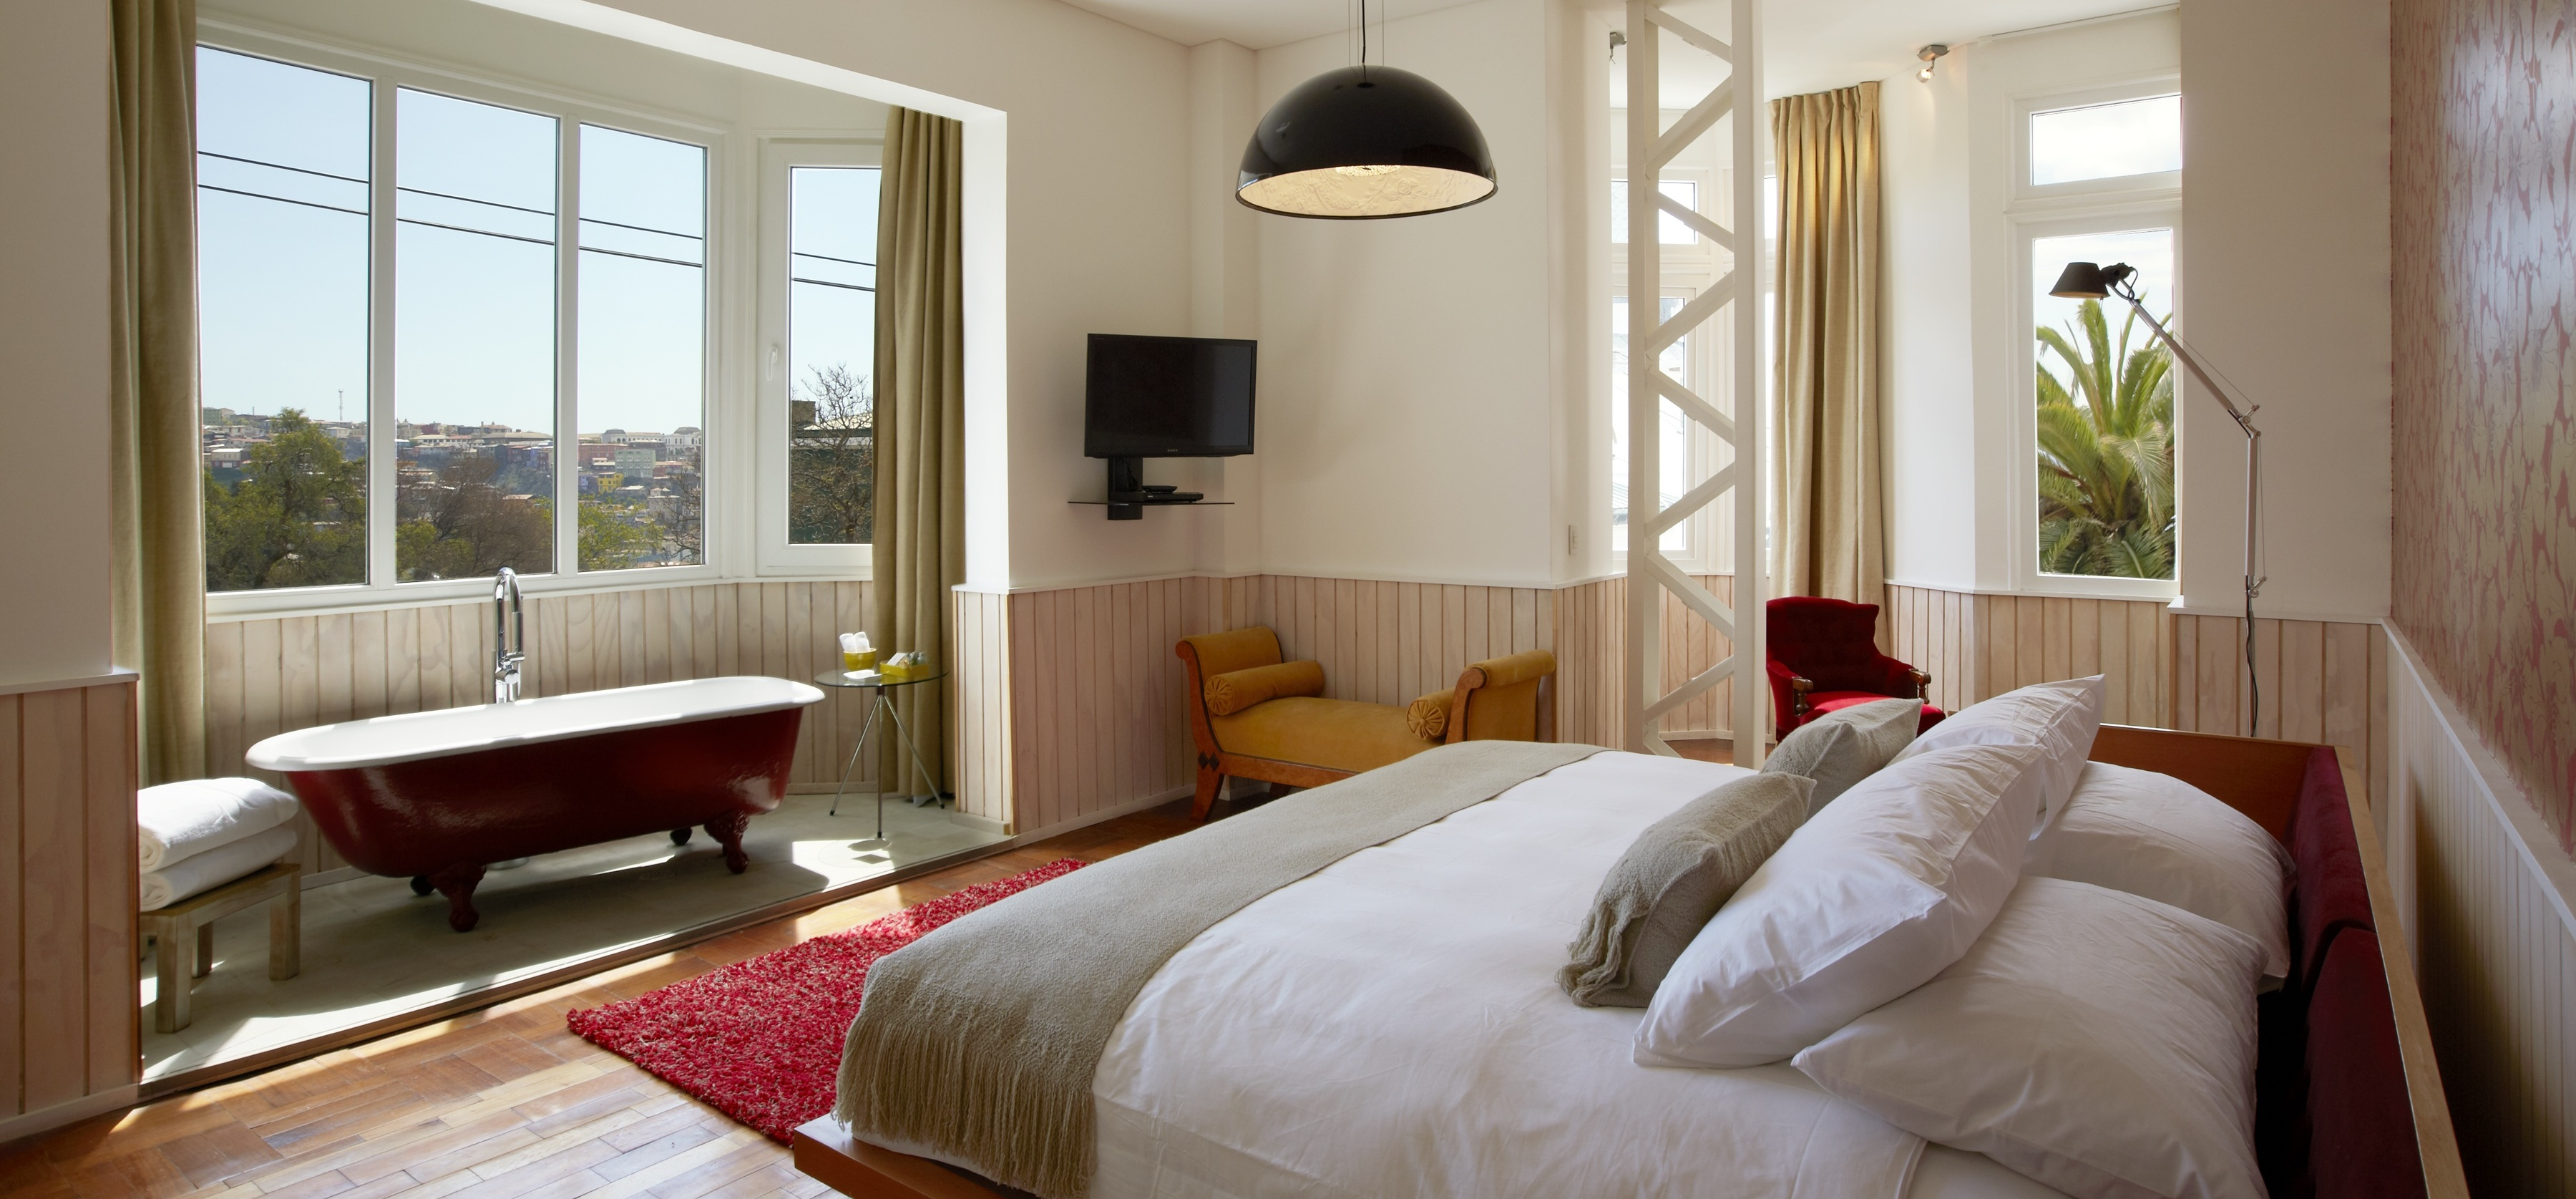 luxury-boutique-hotel-valparaiso